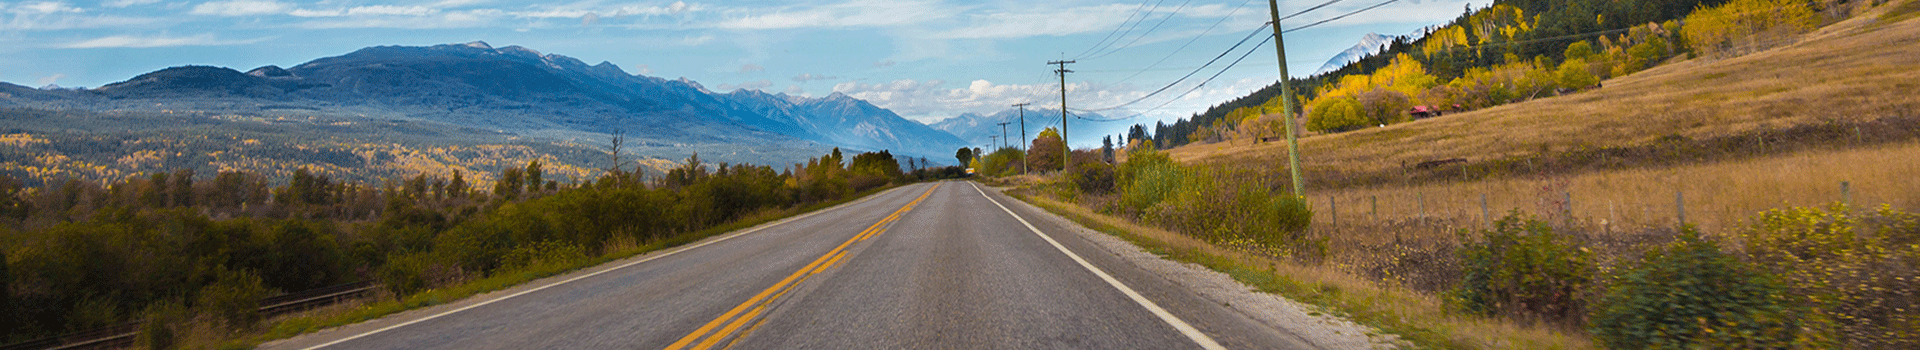 banner-country-side-road